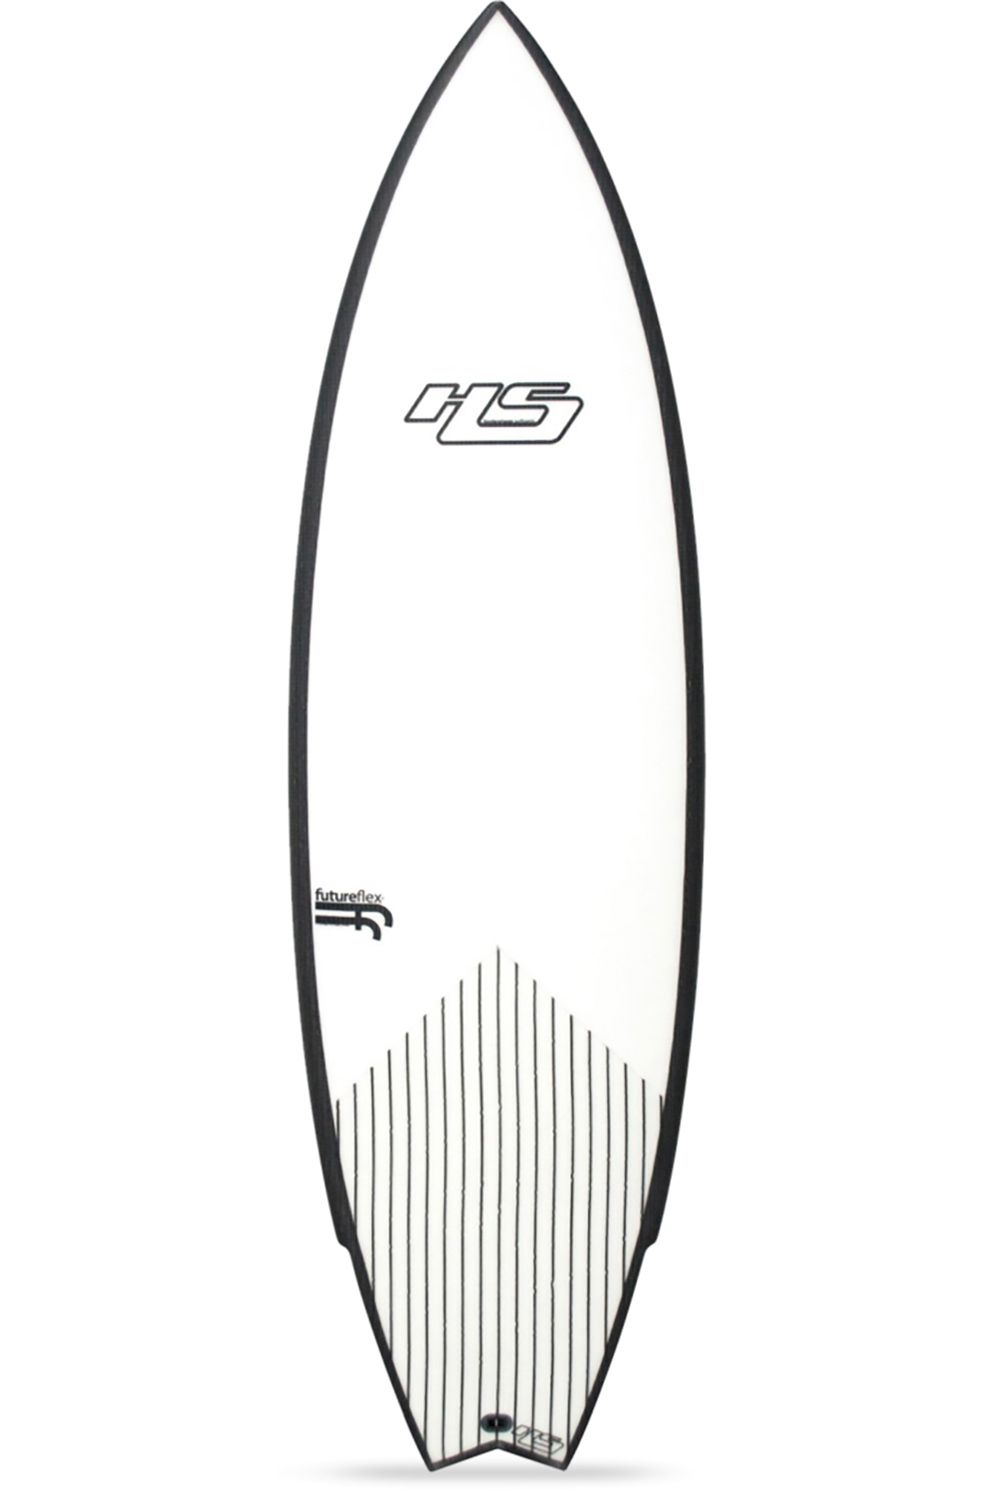 Prancha Surf Hayden Shapes UNTITLED FF CLEAR Swallow Tail - White